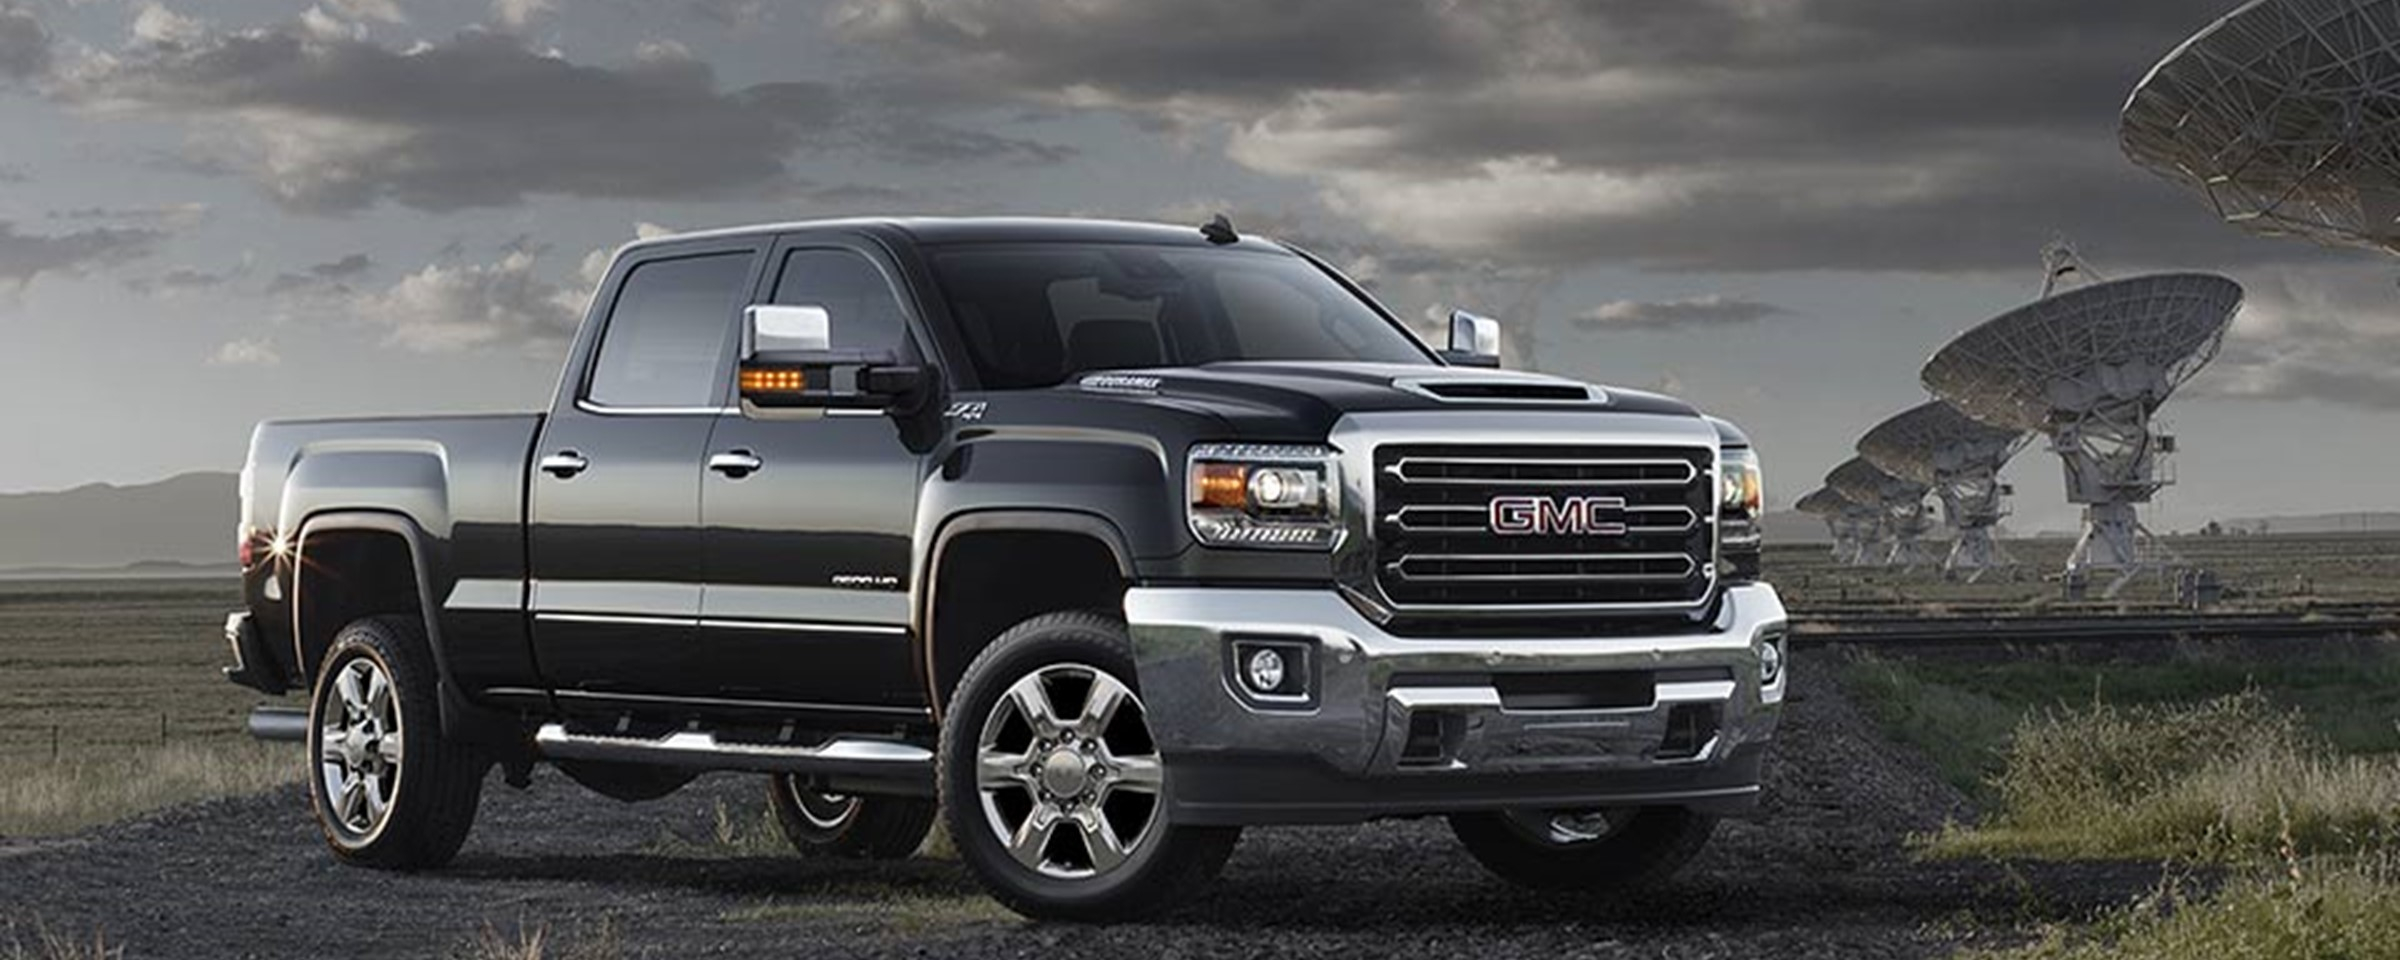 2022 gmc sierra accessories – 2021 gmc